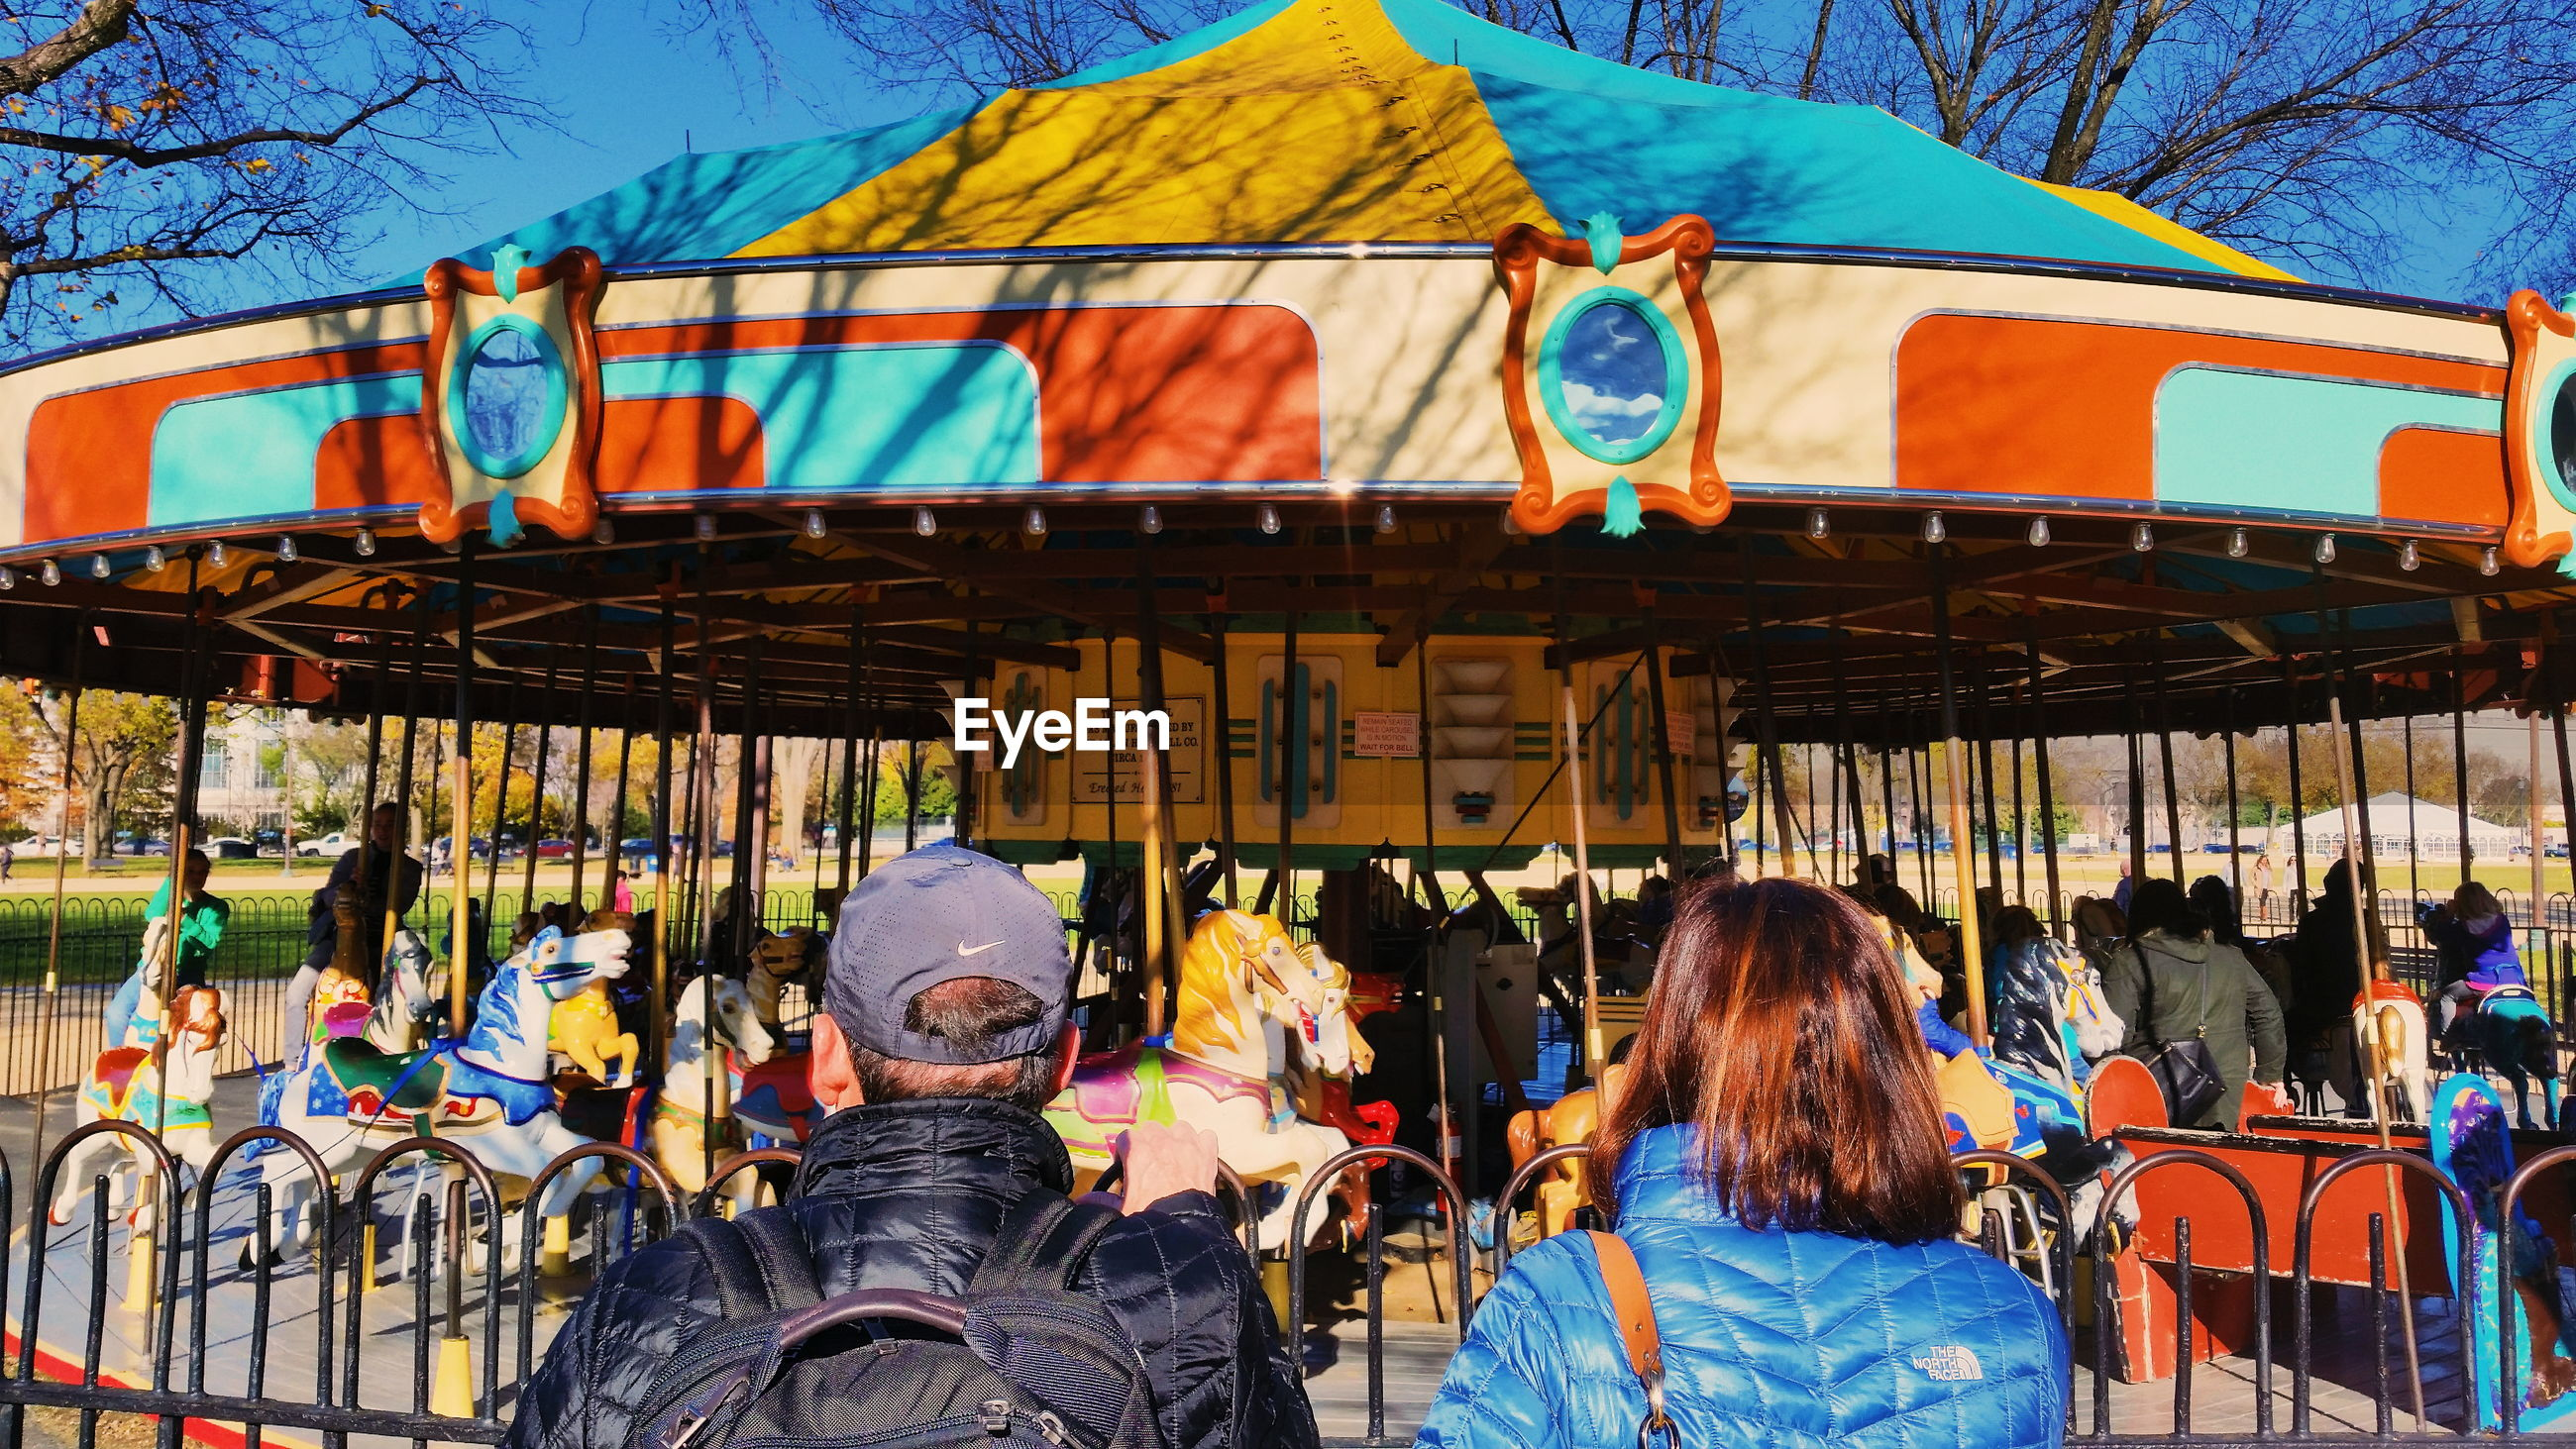 REAR VIEW OF PEOPLE ON AMUSEMENT PARK RIDE